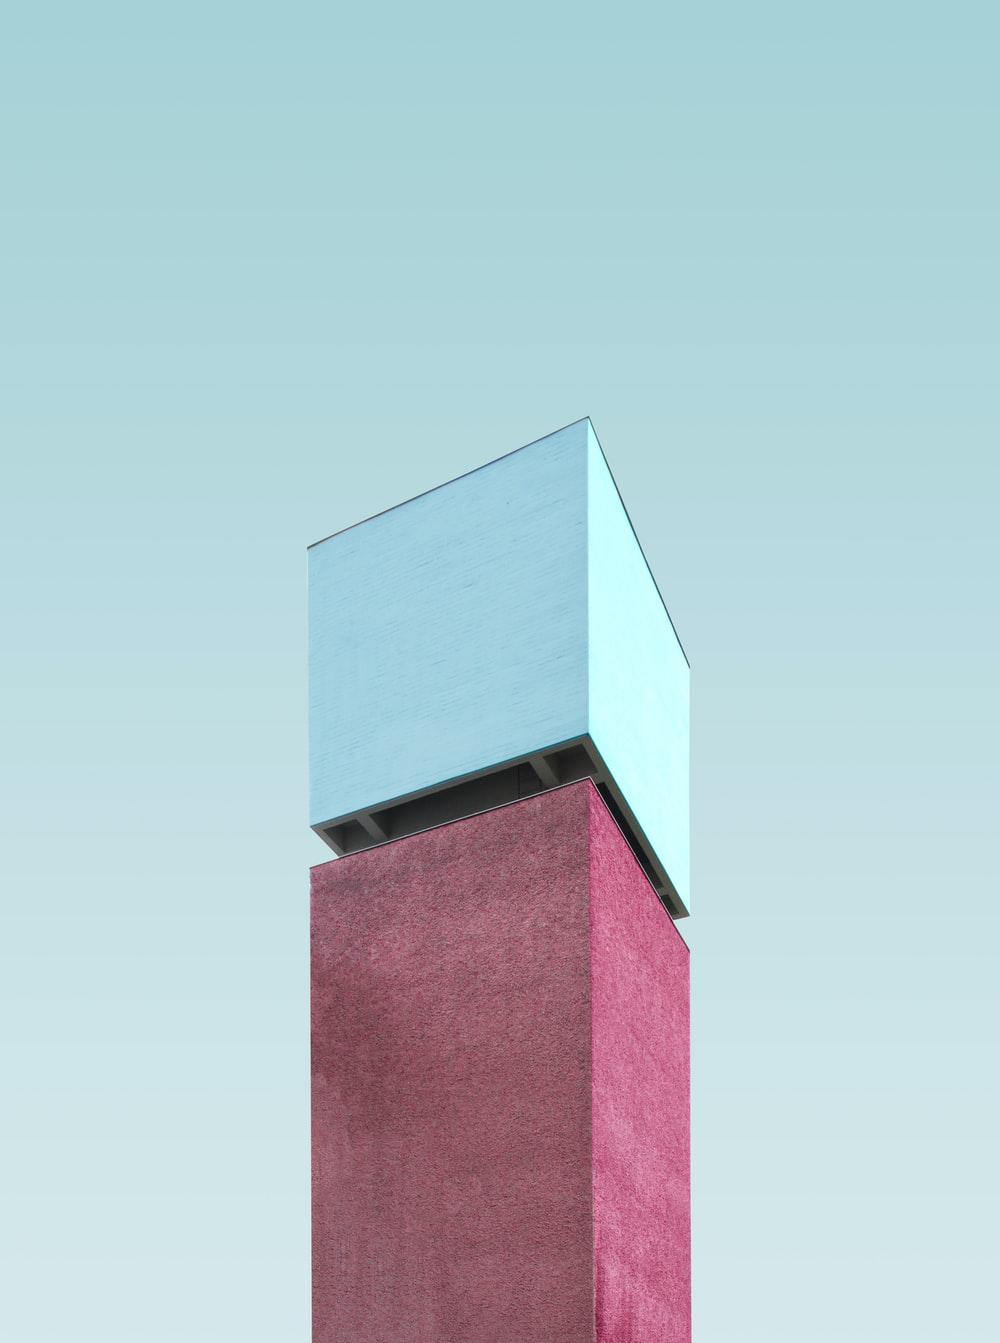 pink and gray tower during daytime